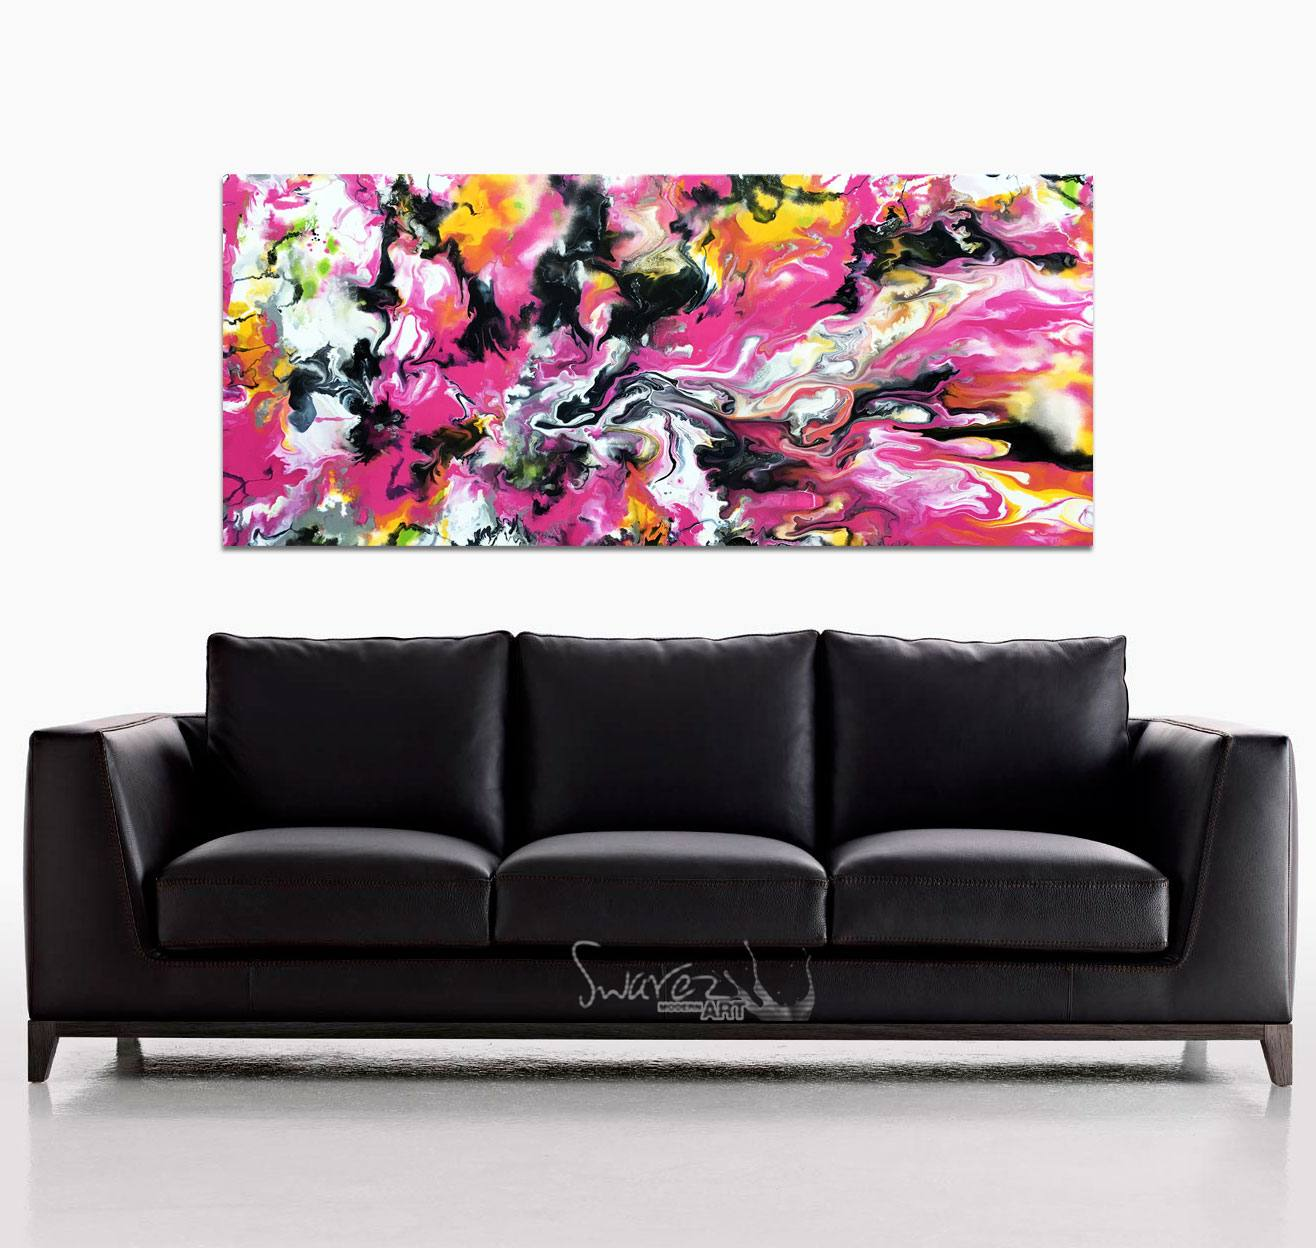 Black sofa and pink art